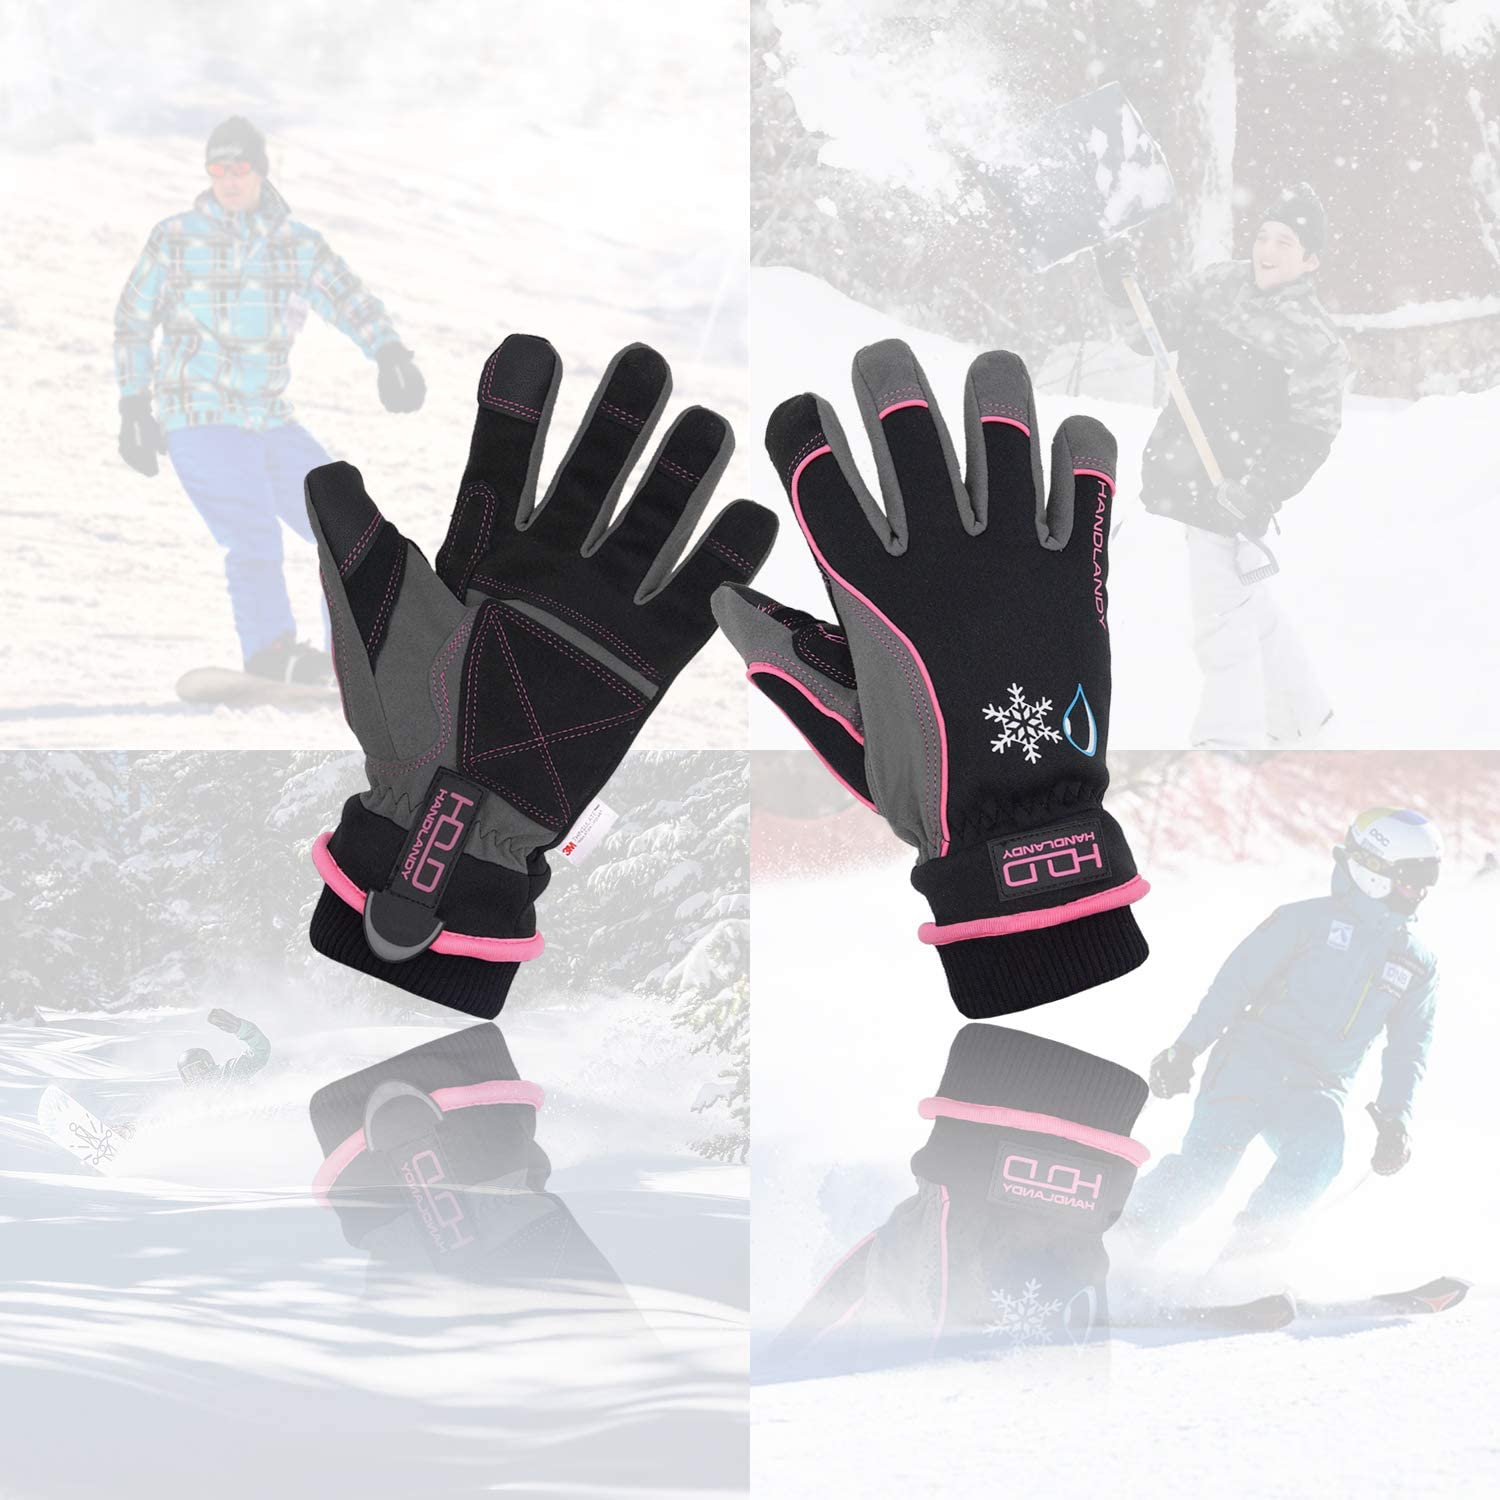 L, Blue Ski Snowboard Work Gloves with 3M Warm Lining Touchscreen Thermal Gloves for Cold Weather Waterproof /& Windproof Winter Gloves for Men